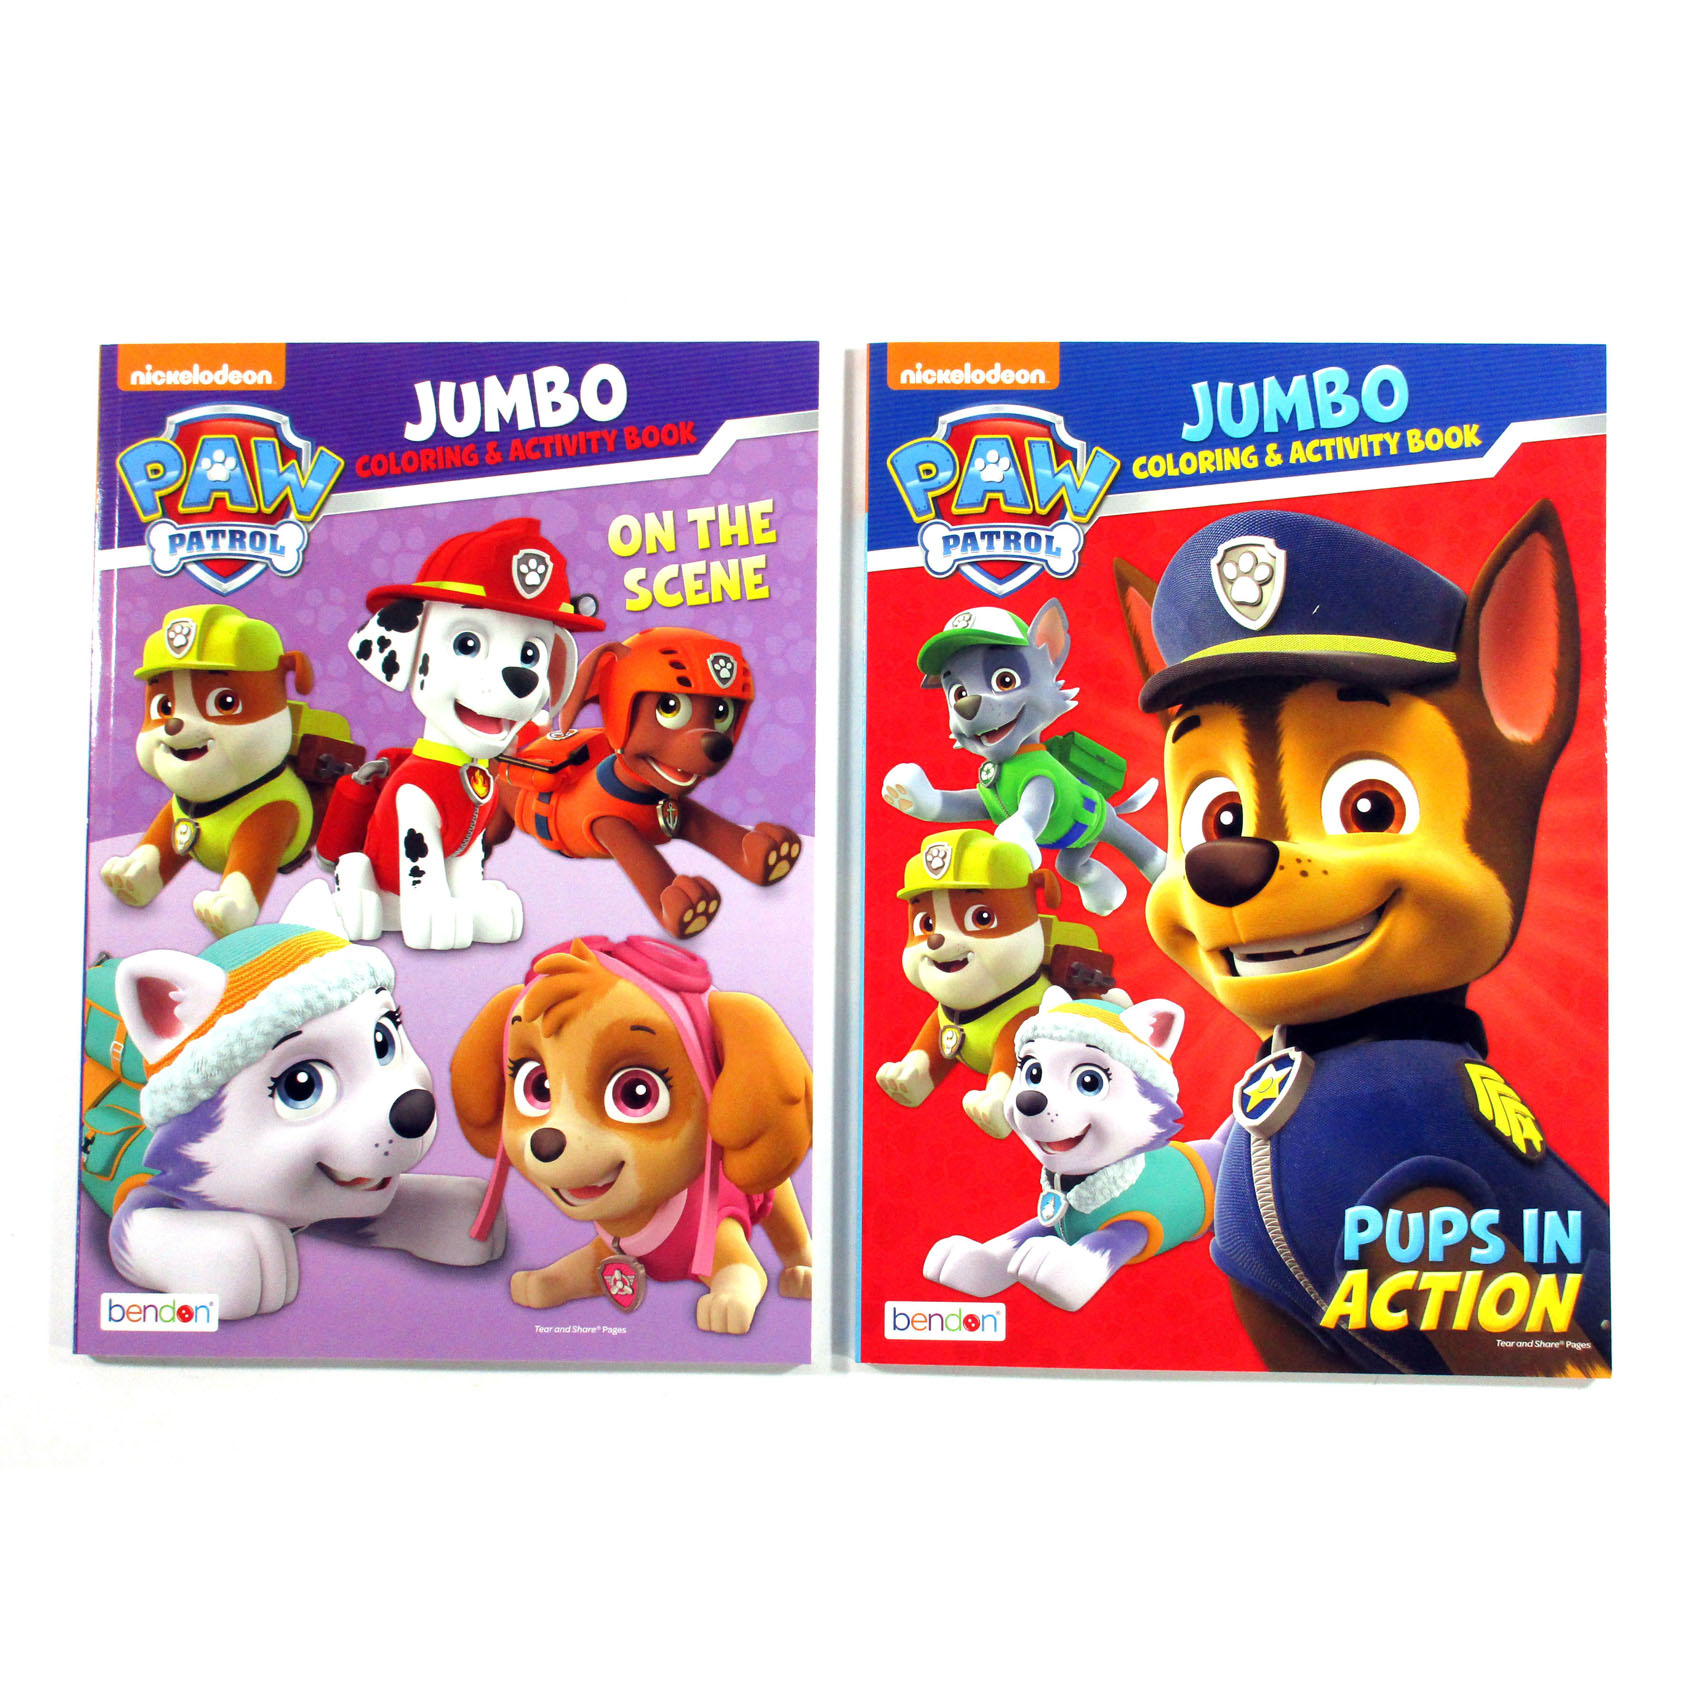 Details About Lot Of 2 Different Nickelodeon Paw Patrol Jumbo Coloring Activity Books New